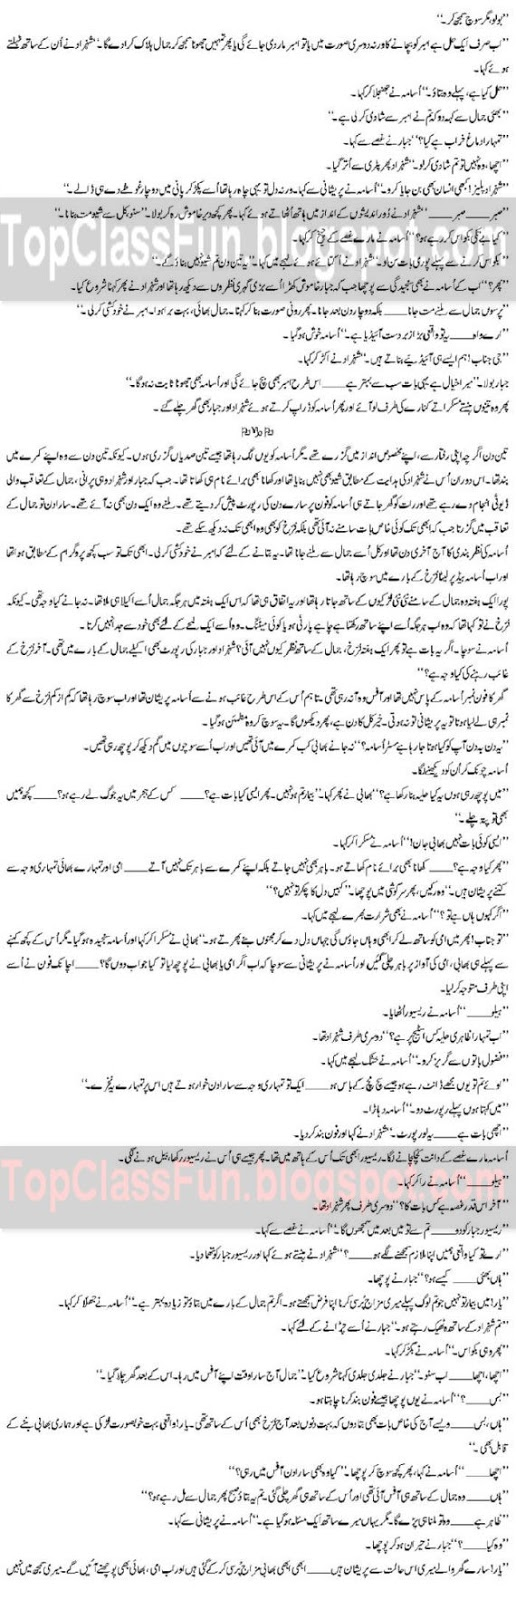 Romantic Urdu Novel - MOHABBAT &#8211; By Shahina Chanda Mehtab Page 11